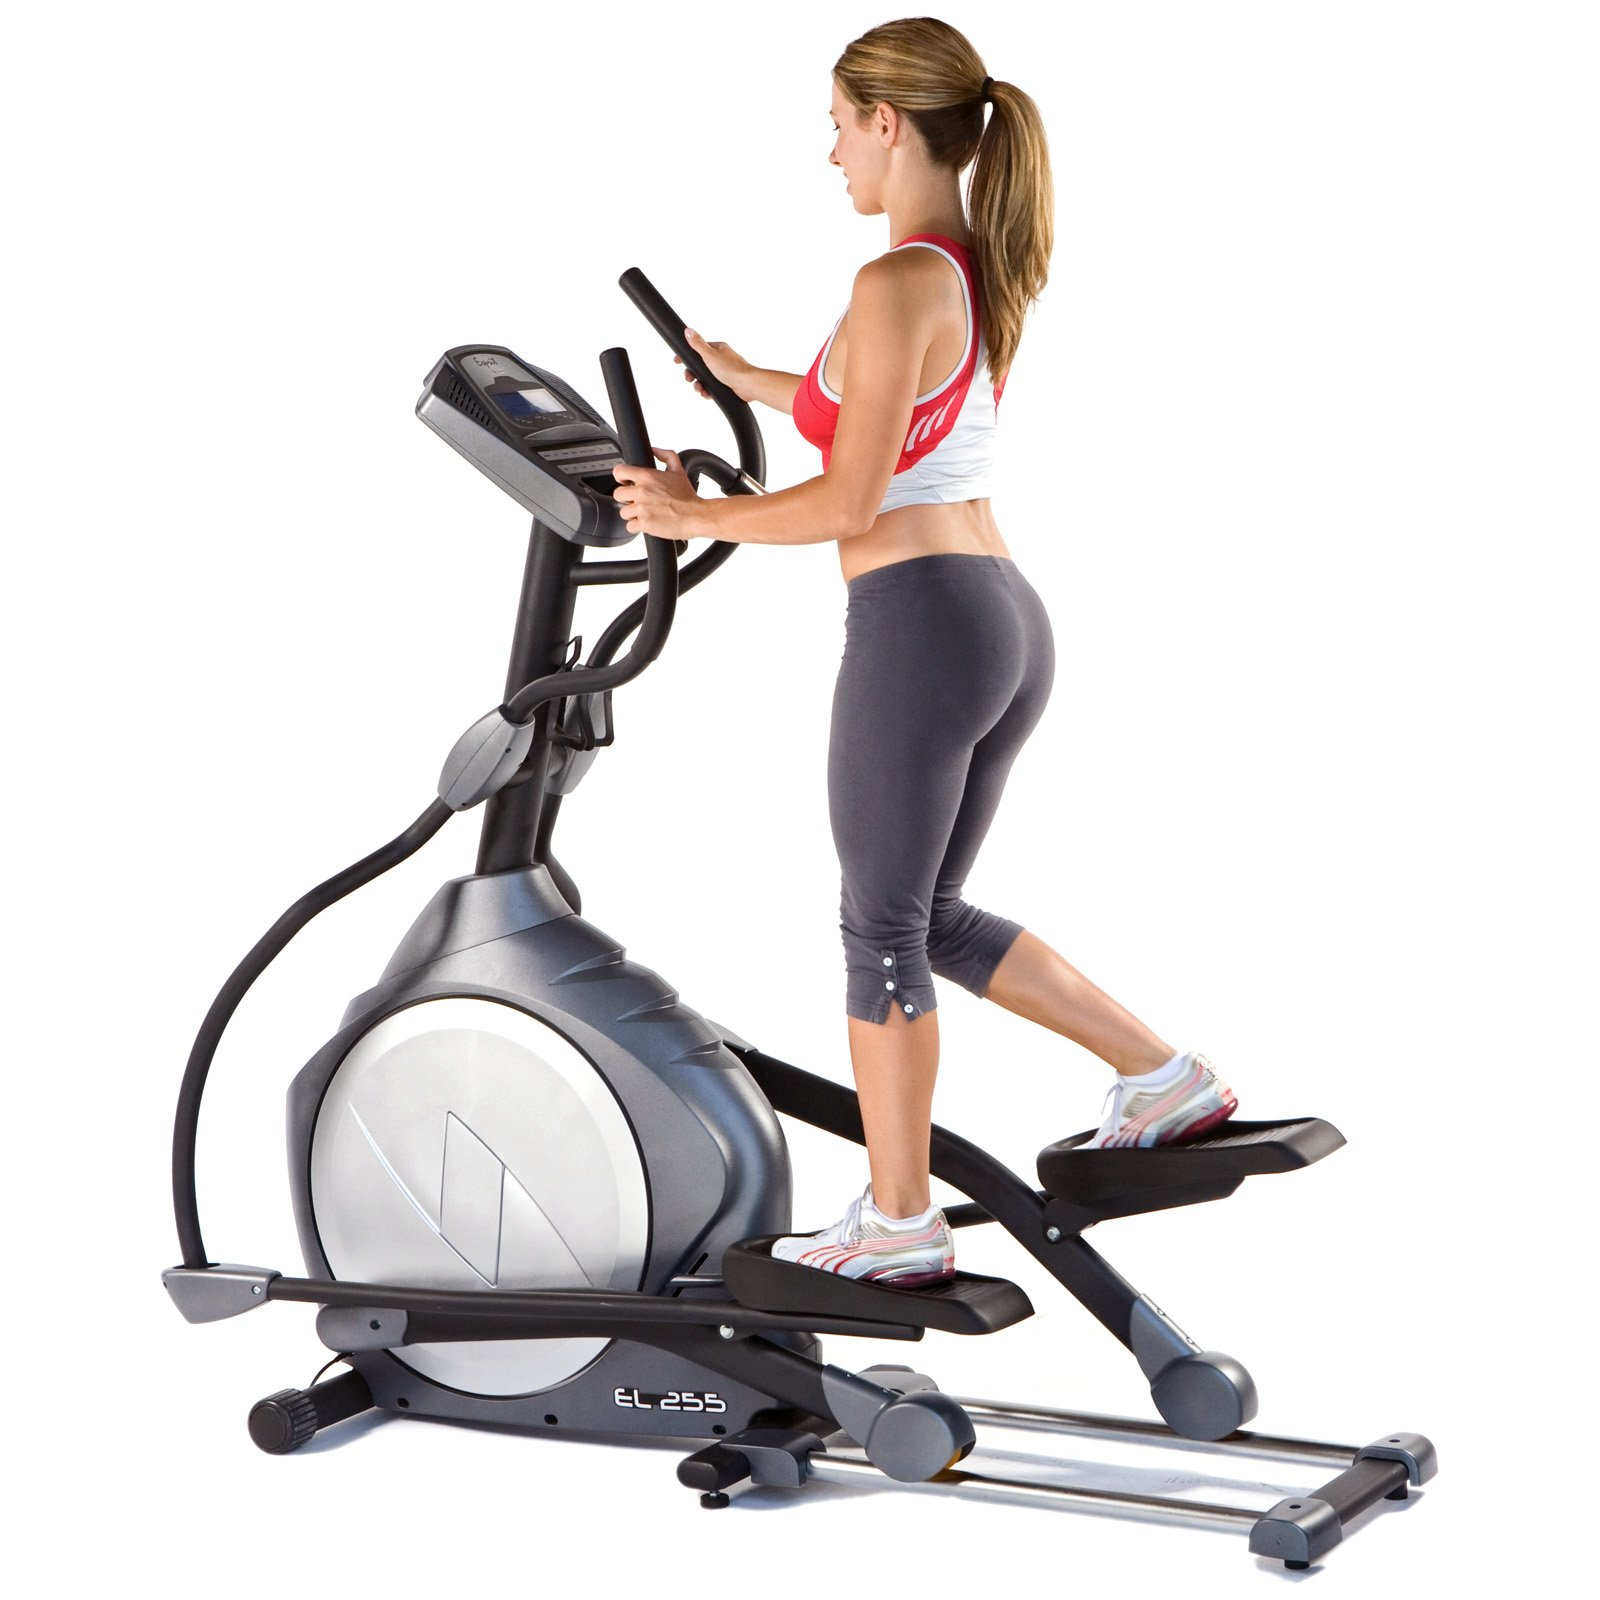 top-5-cardio-exercise-equipments-to-lose-weight